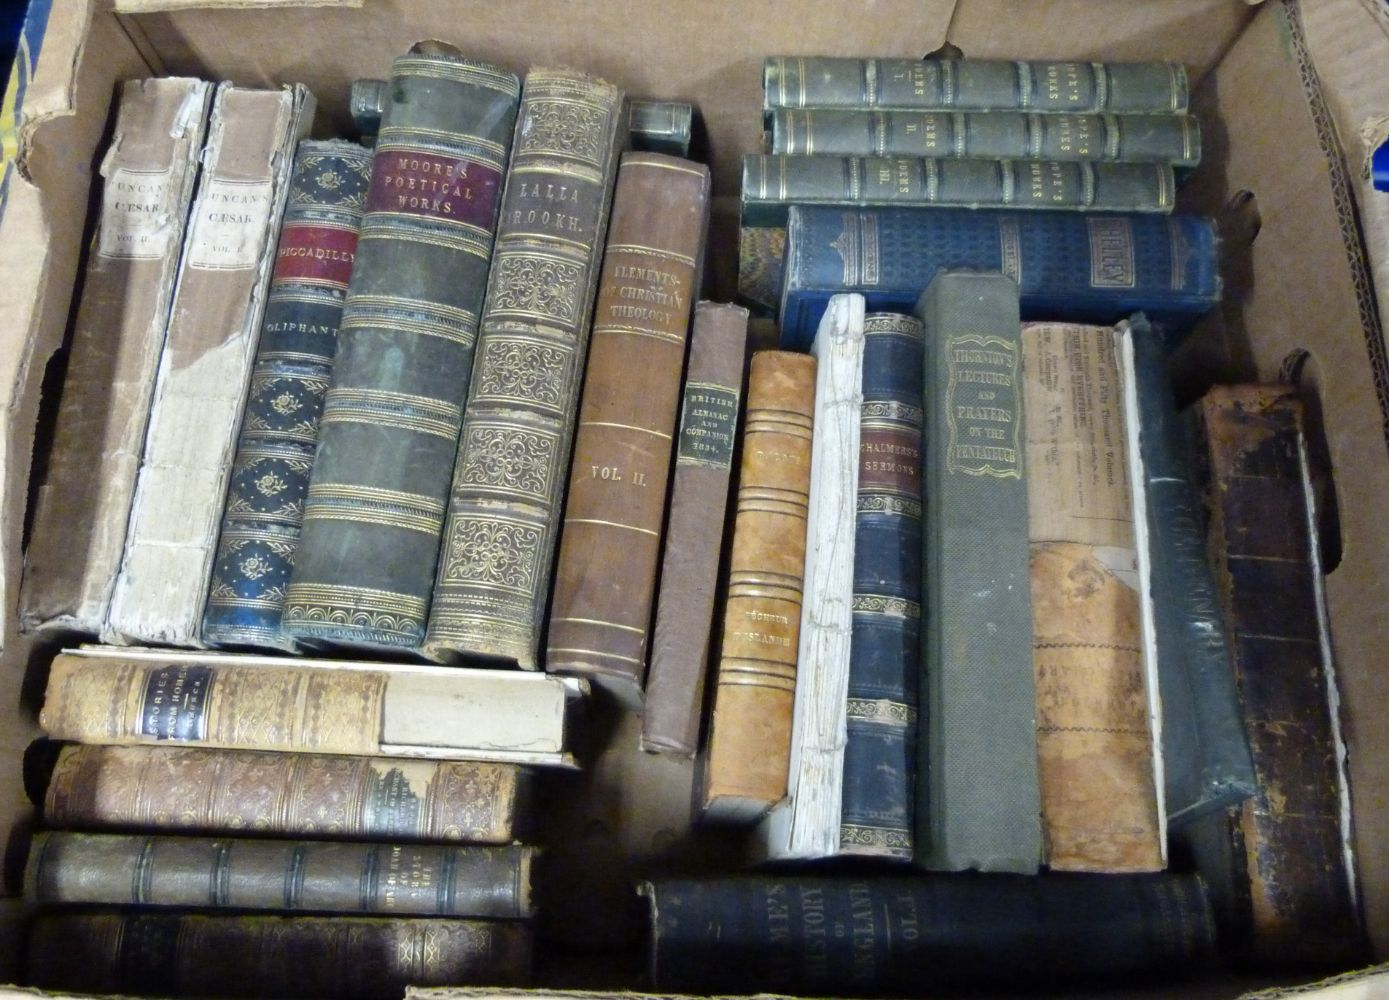 CARLISLE. Antiquarian and Collectable Books including fine Ornithology.